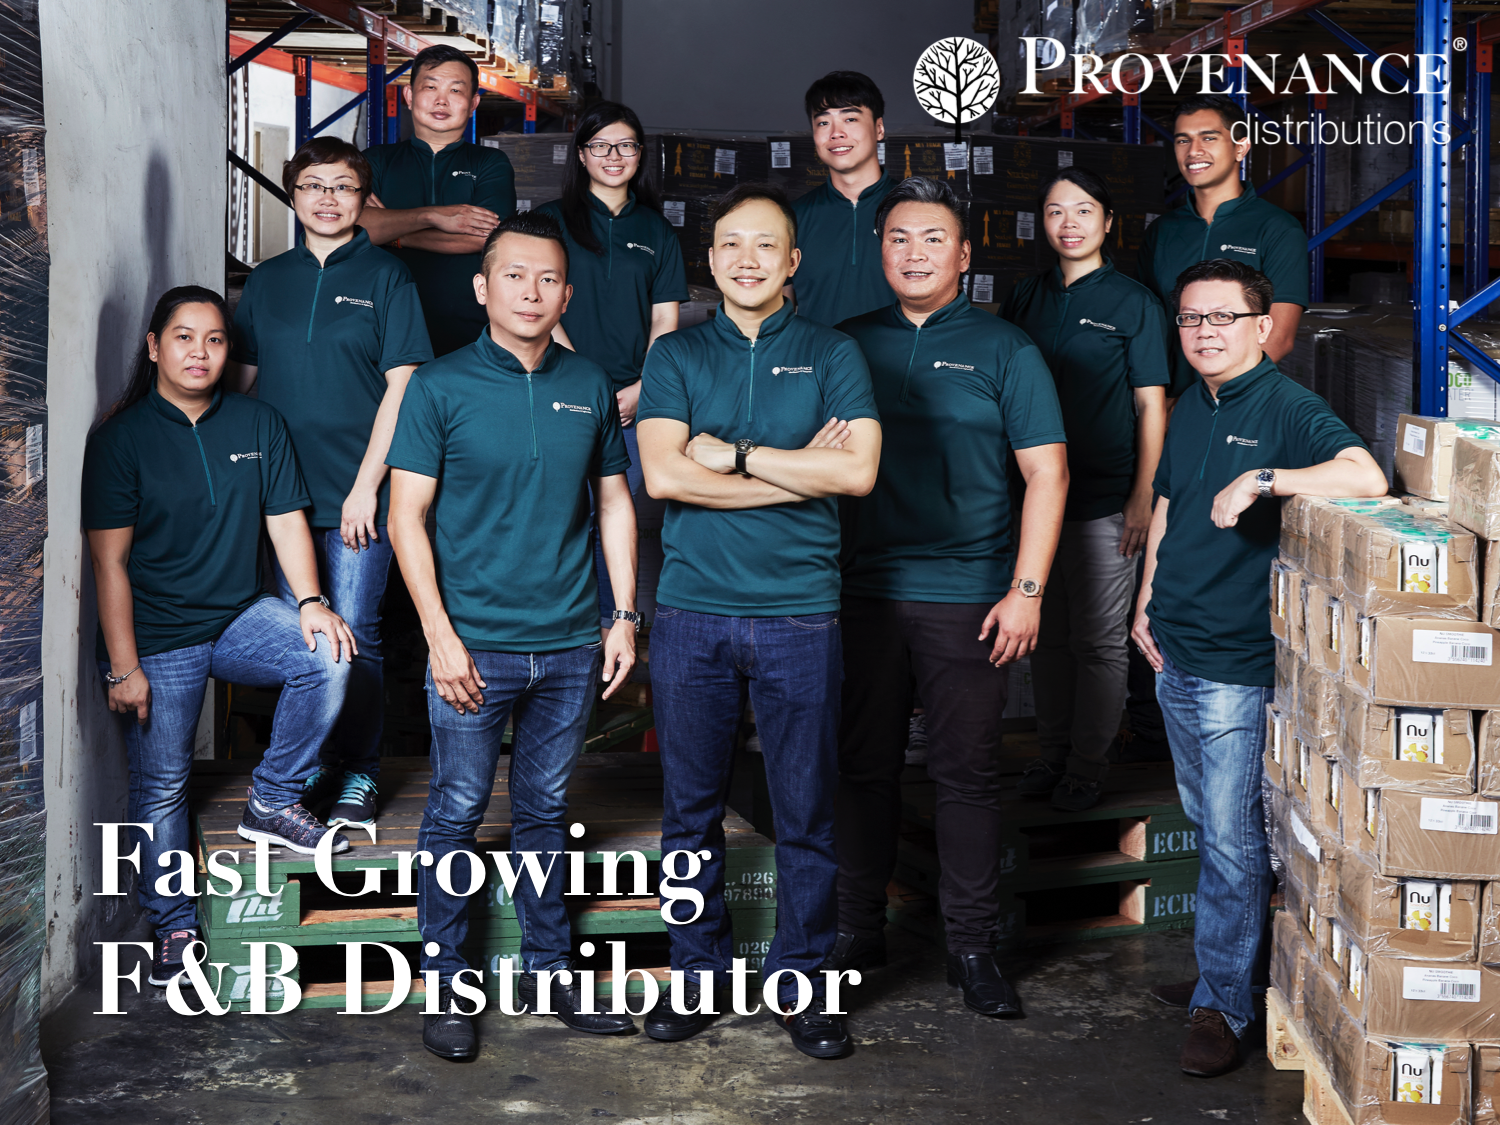 Provenance Distribution Importer & Distributor of fast moving food & beverages in Hong Kong, Macau & SIngapore